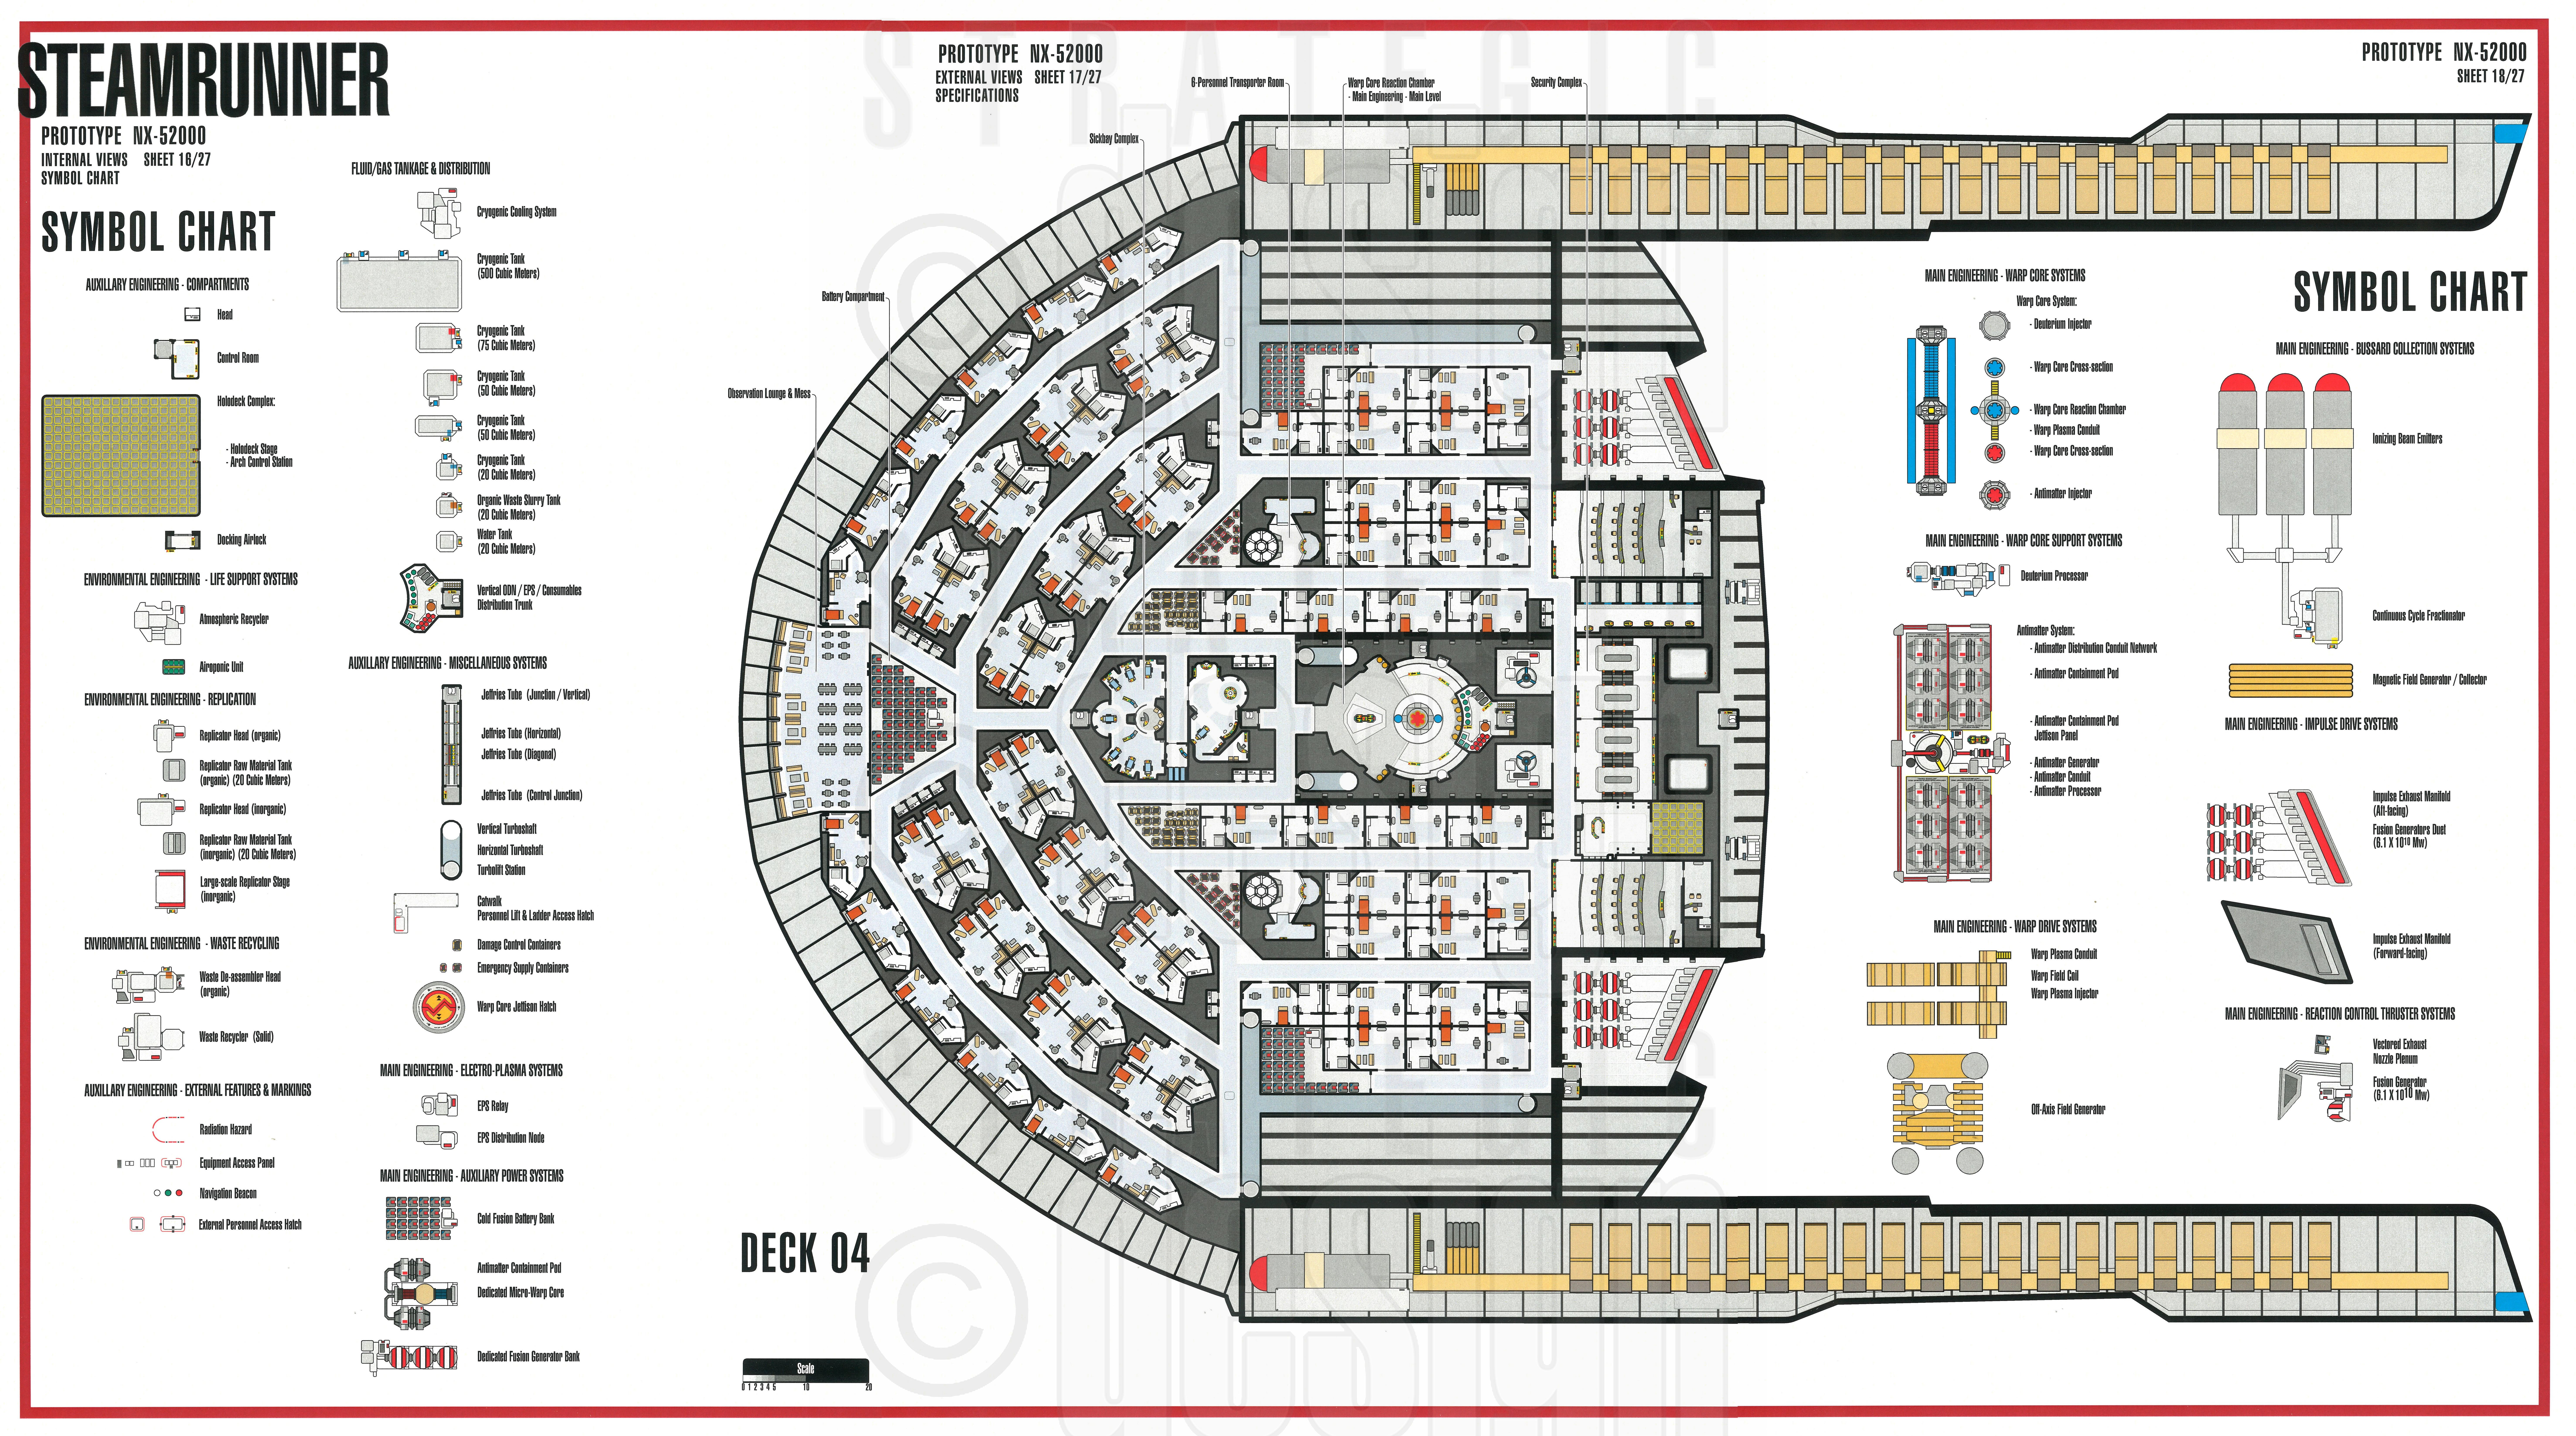 Star trek blueprints steamrunner class starship prototype for Deck blueprints